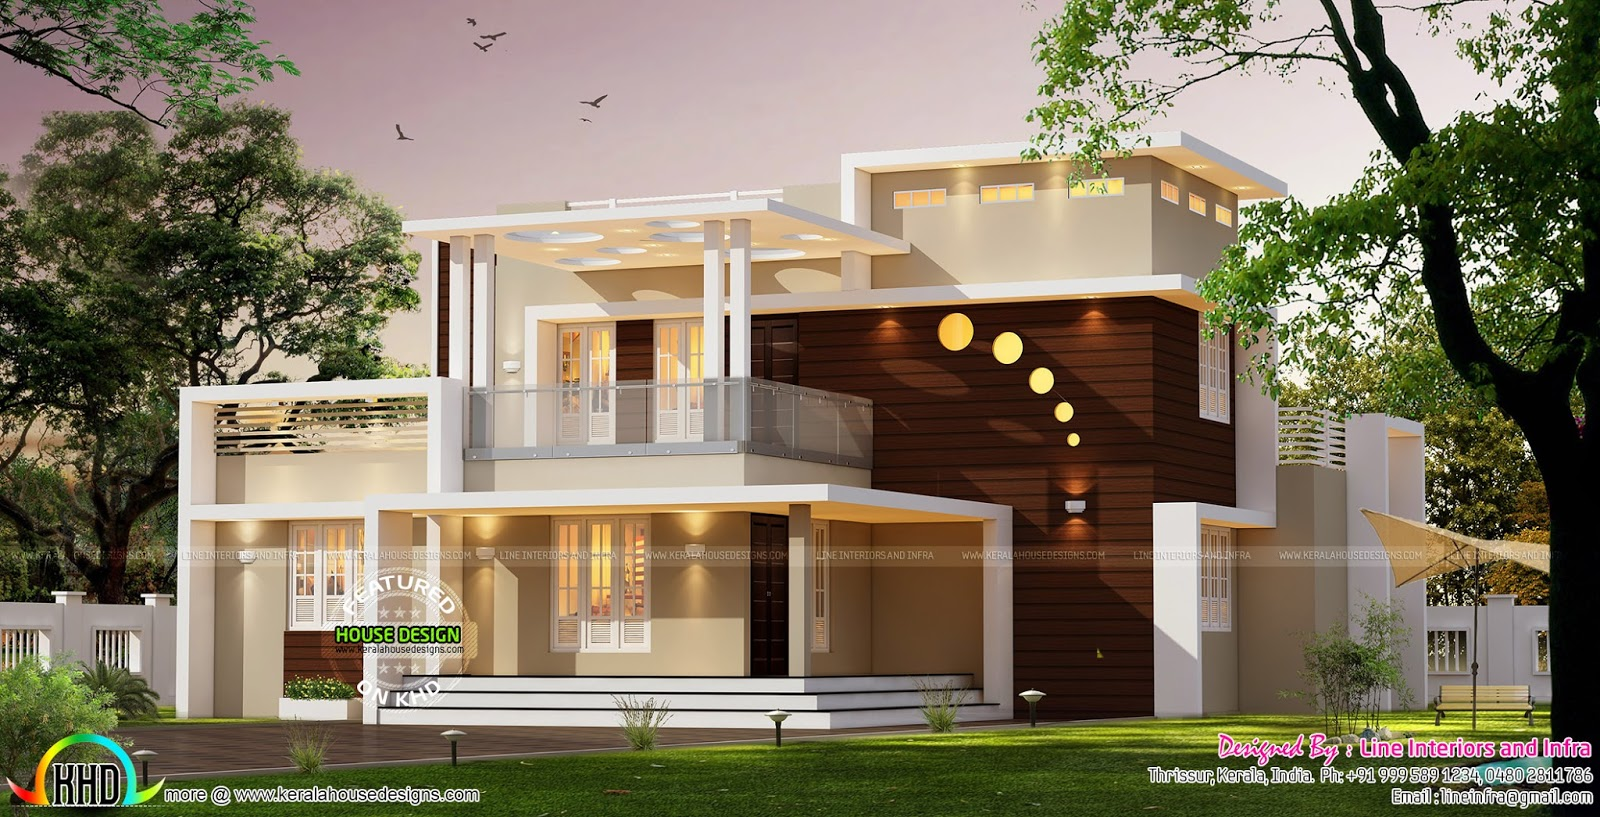 Contemporary style home architecture 3000 sq ft kerala for Home designs 3000 sq ft